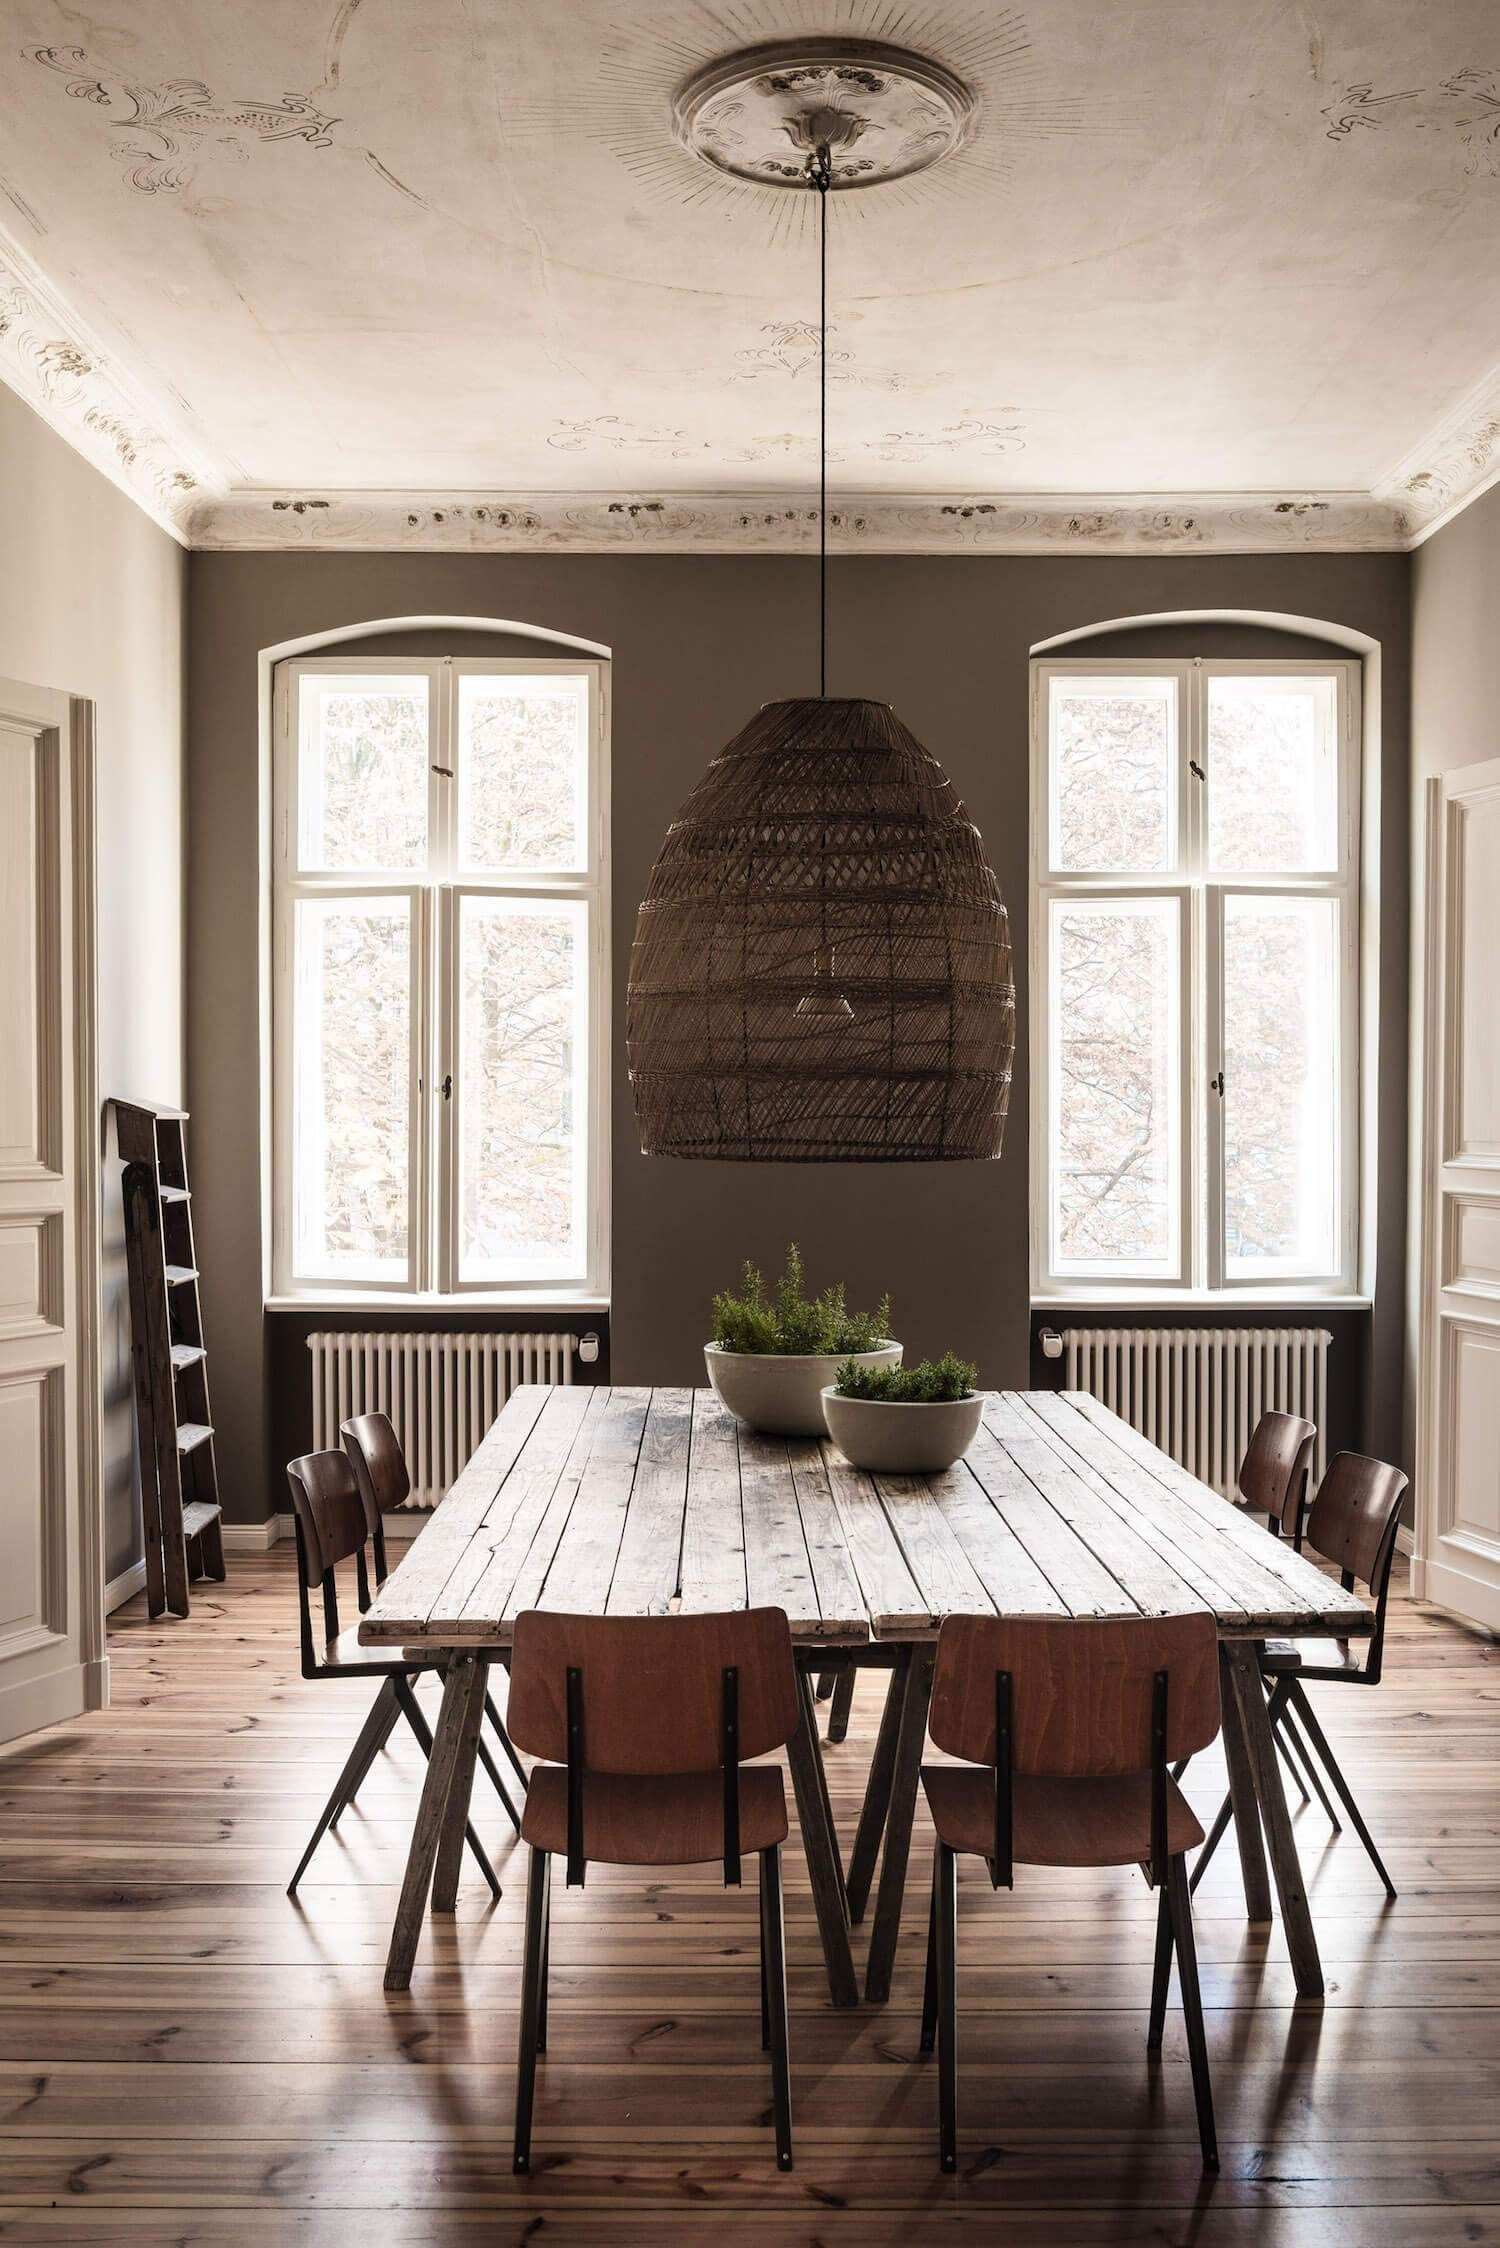 Home interior design kitchen berlin apartment from the th century  via coco lapine design